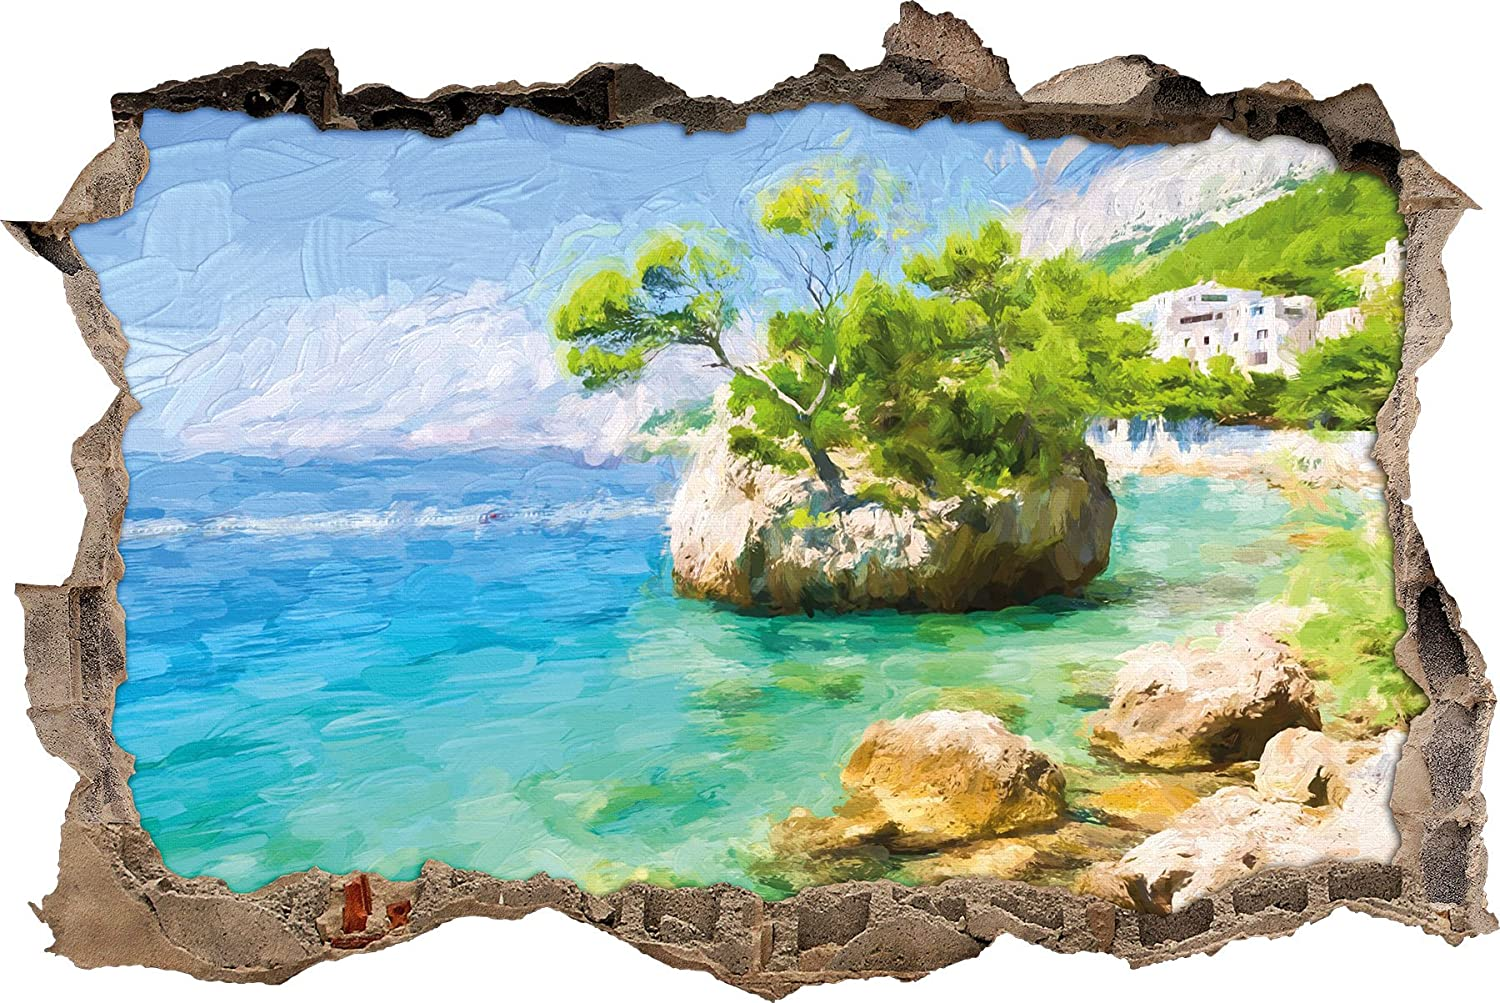 Beautiful Dalmatia beach in Croatia Art Brush effect Wall breakthrough in 3D look, wall or door stickers, wall stickers, wall sticker, wall decoration Stil.Zeit